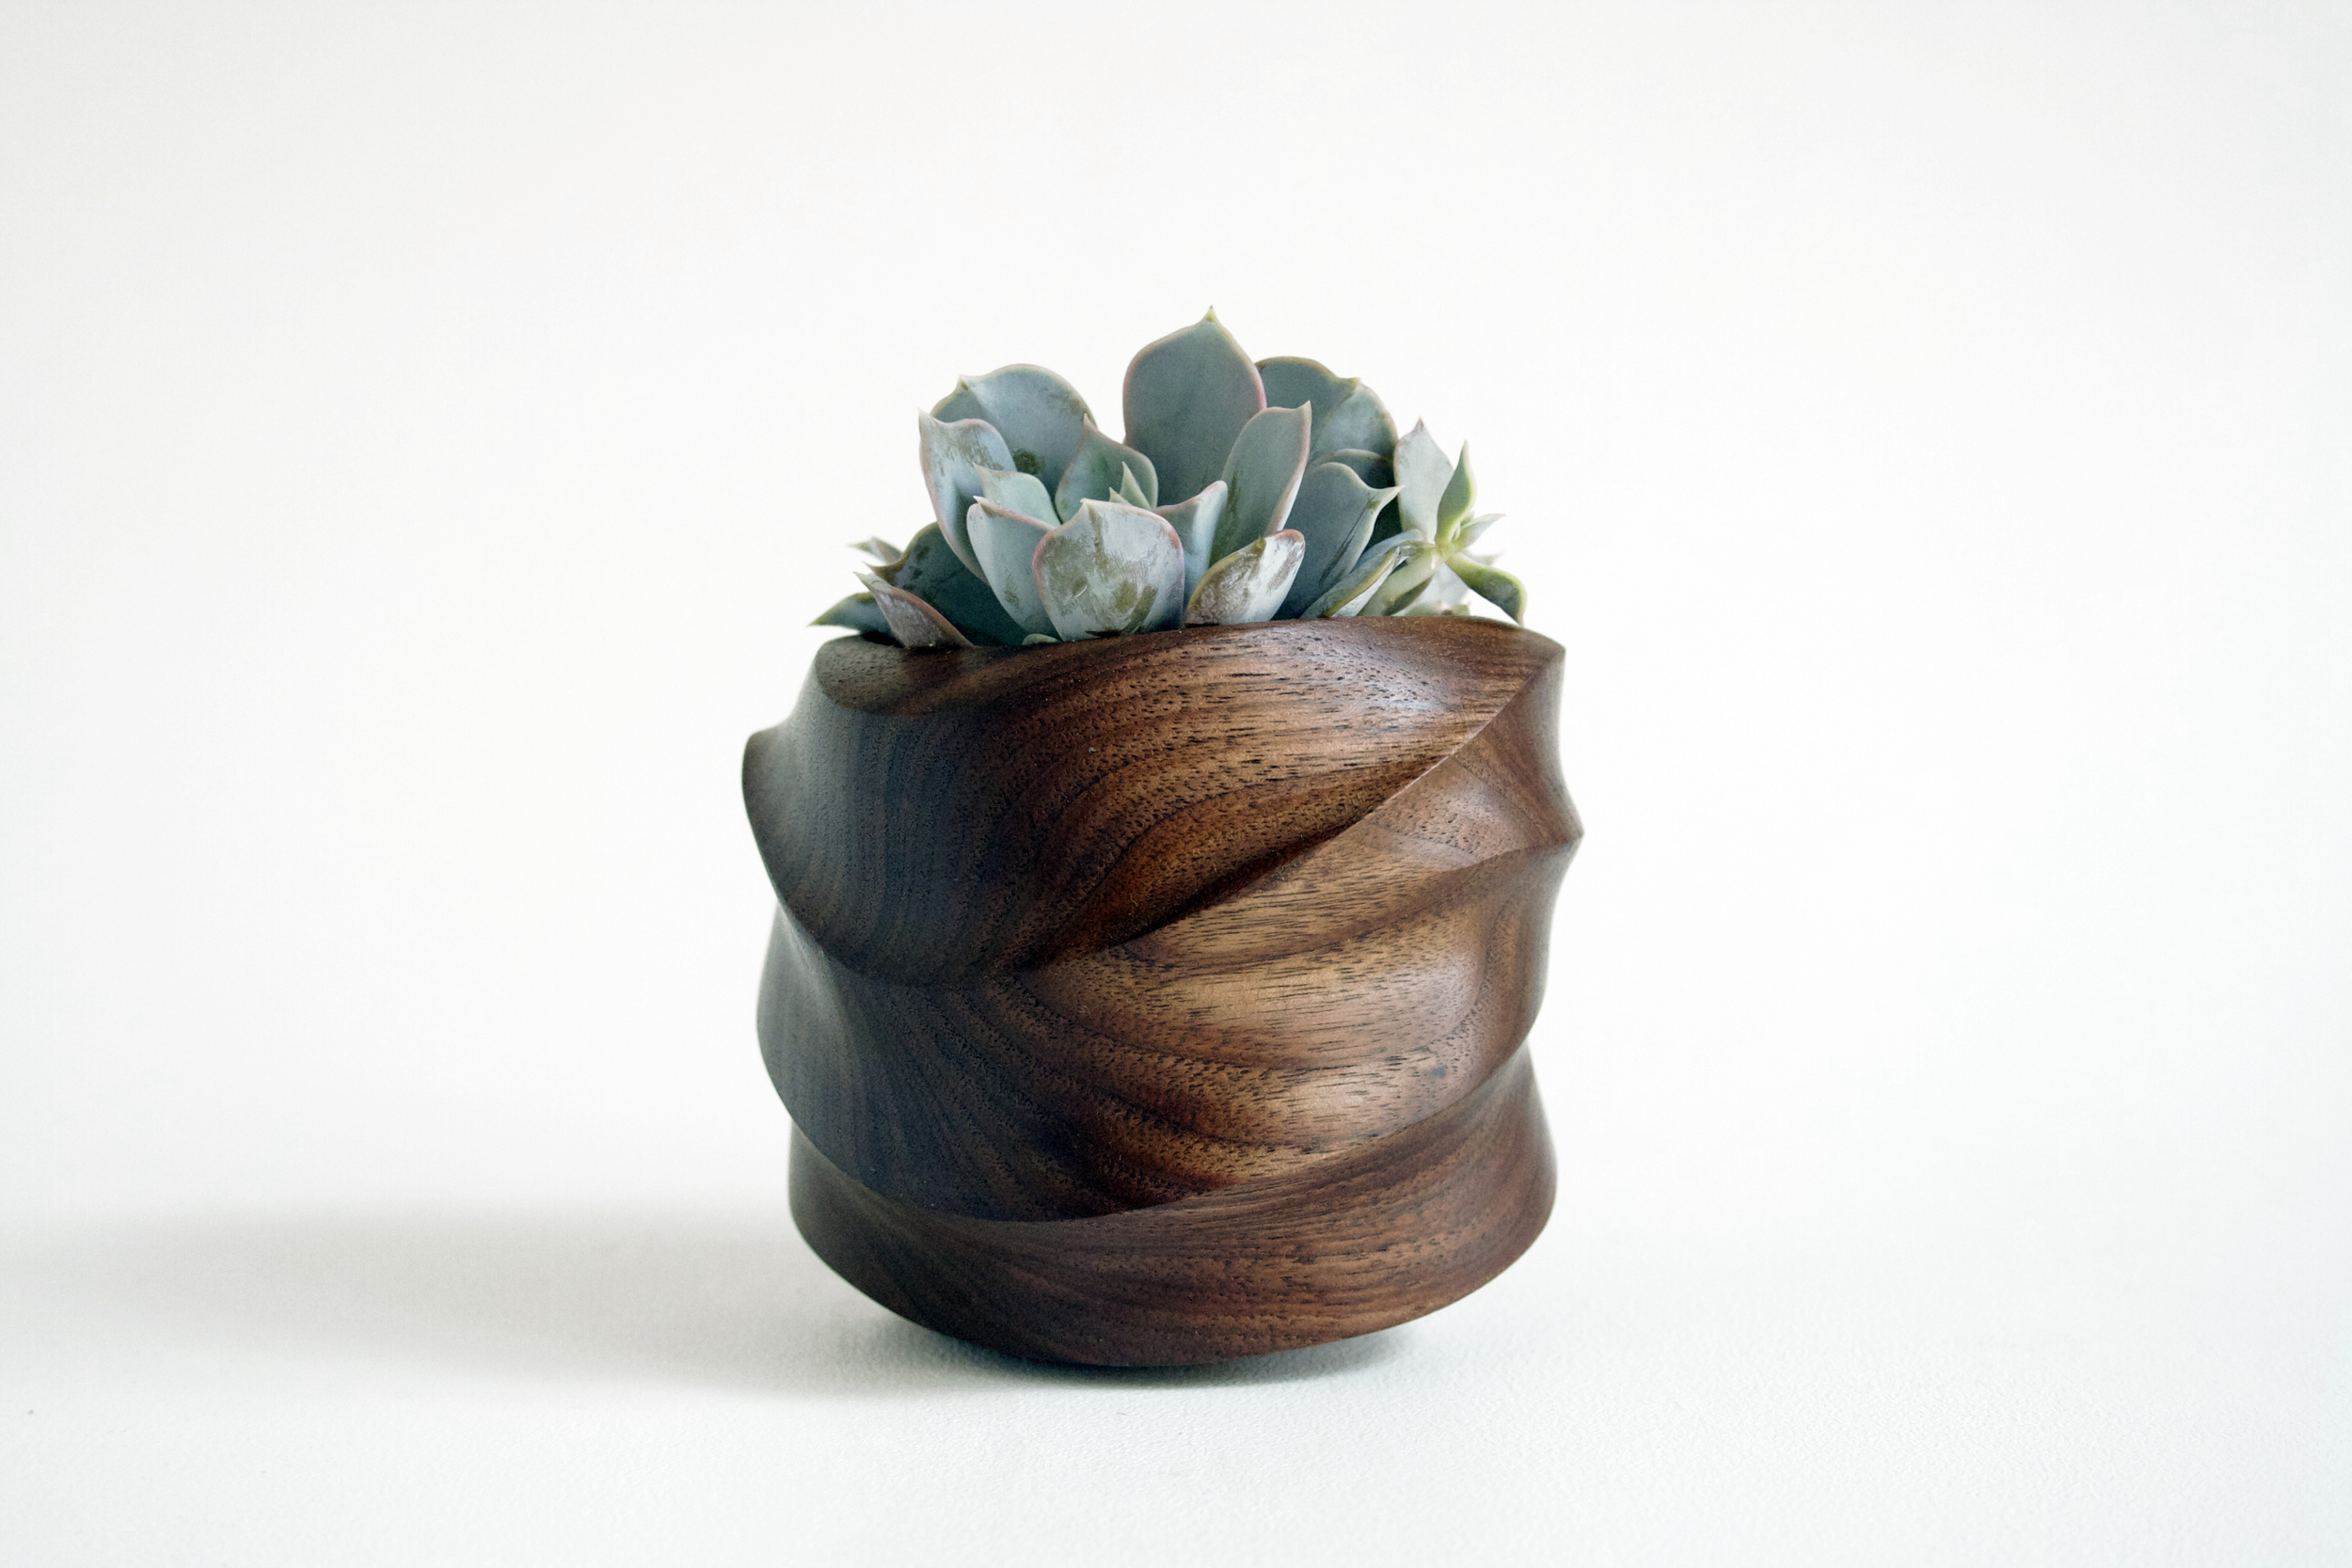 Foxwood Co. FORMA Walnut Vessel handmade and handcrafted wood succulent planter via Needles + Leaves blog.